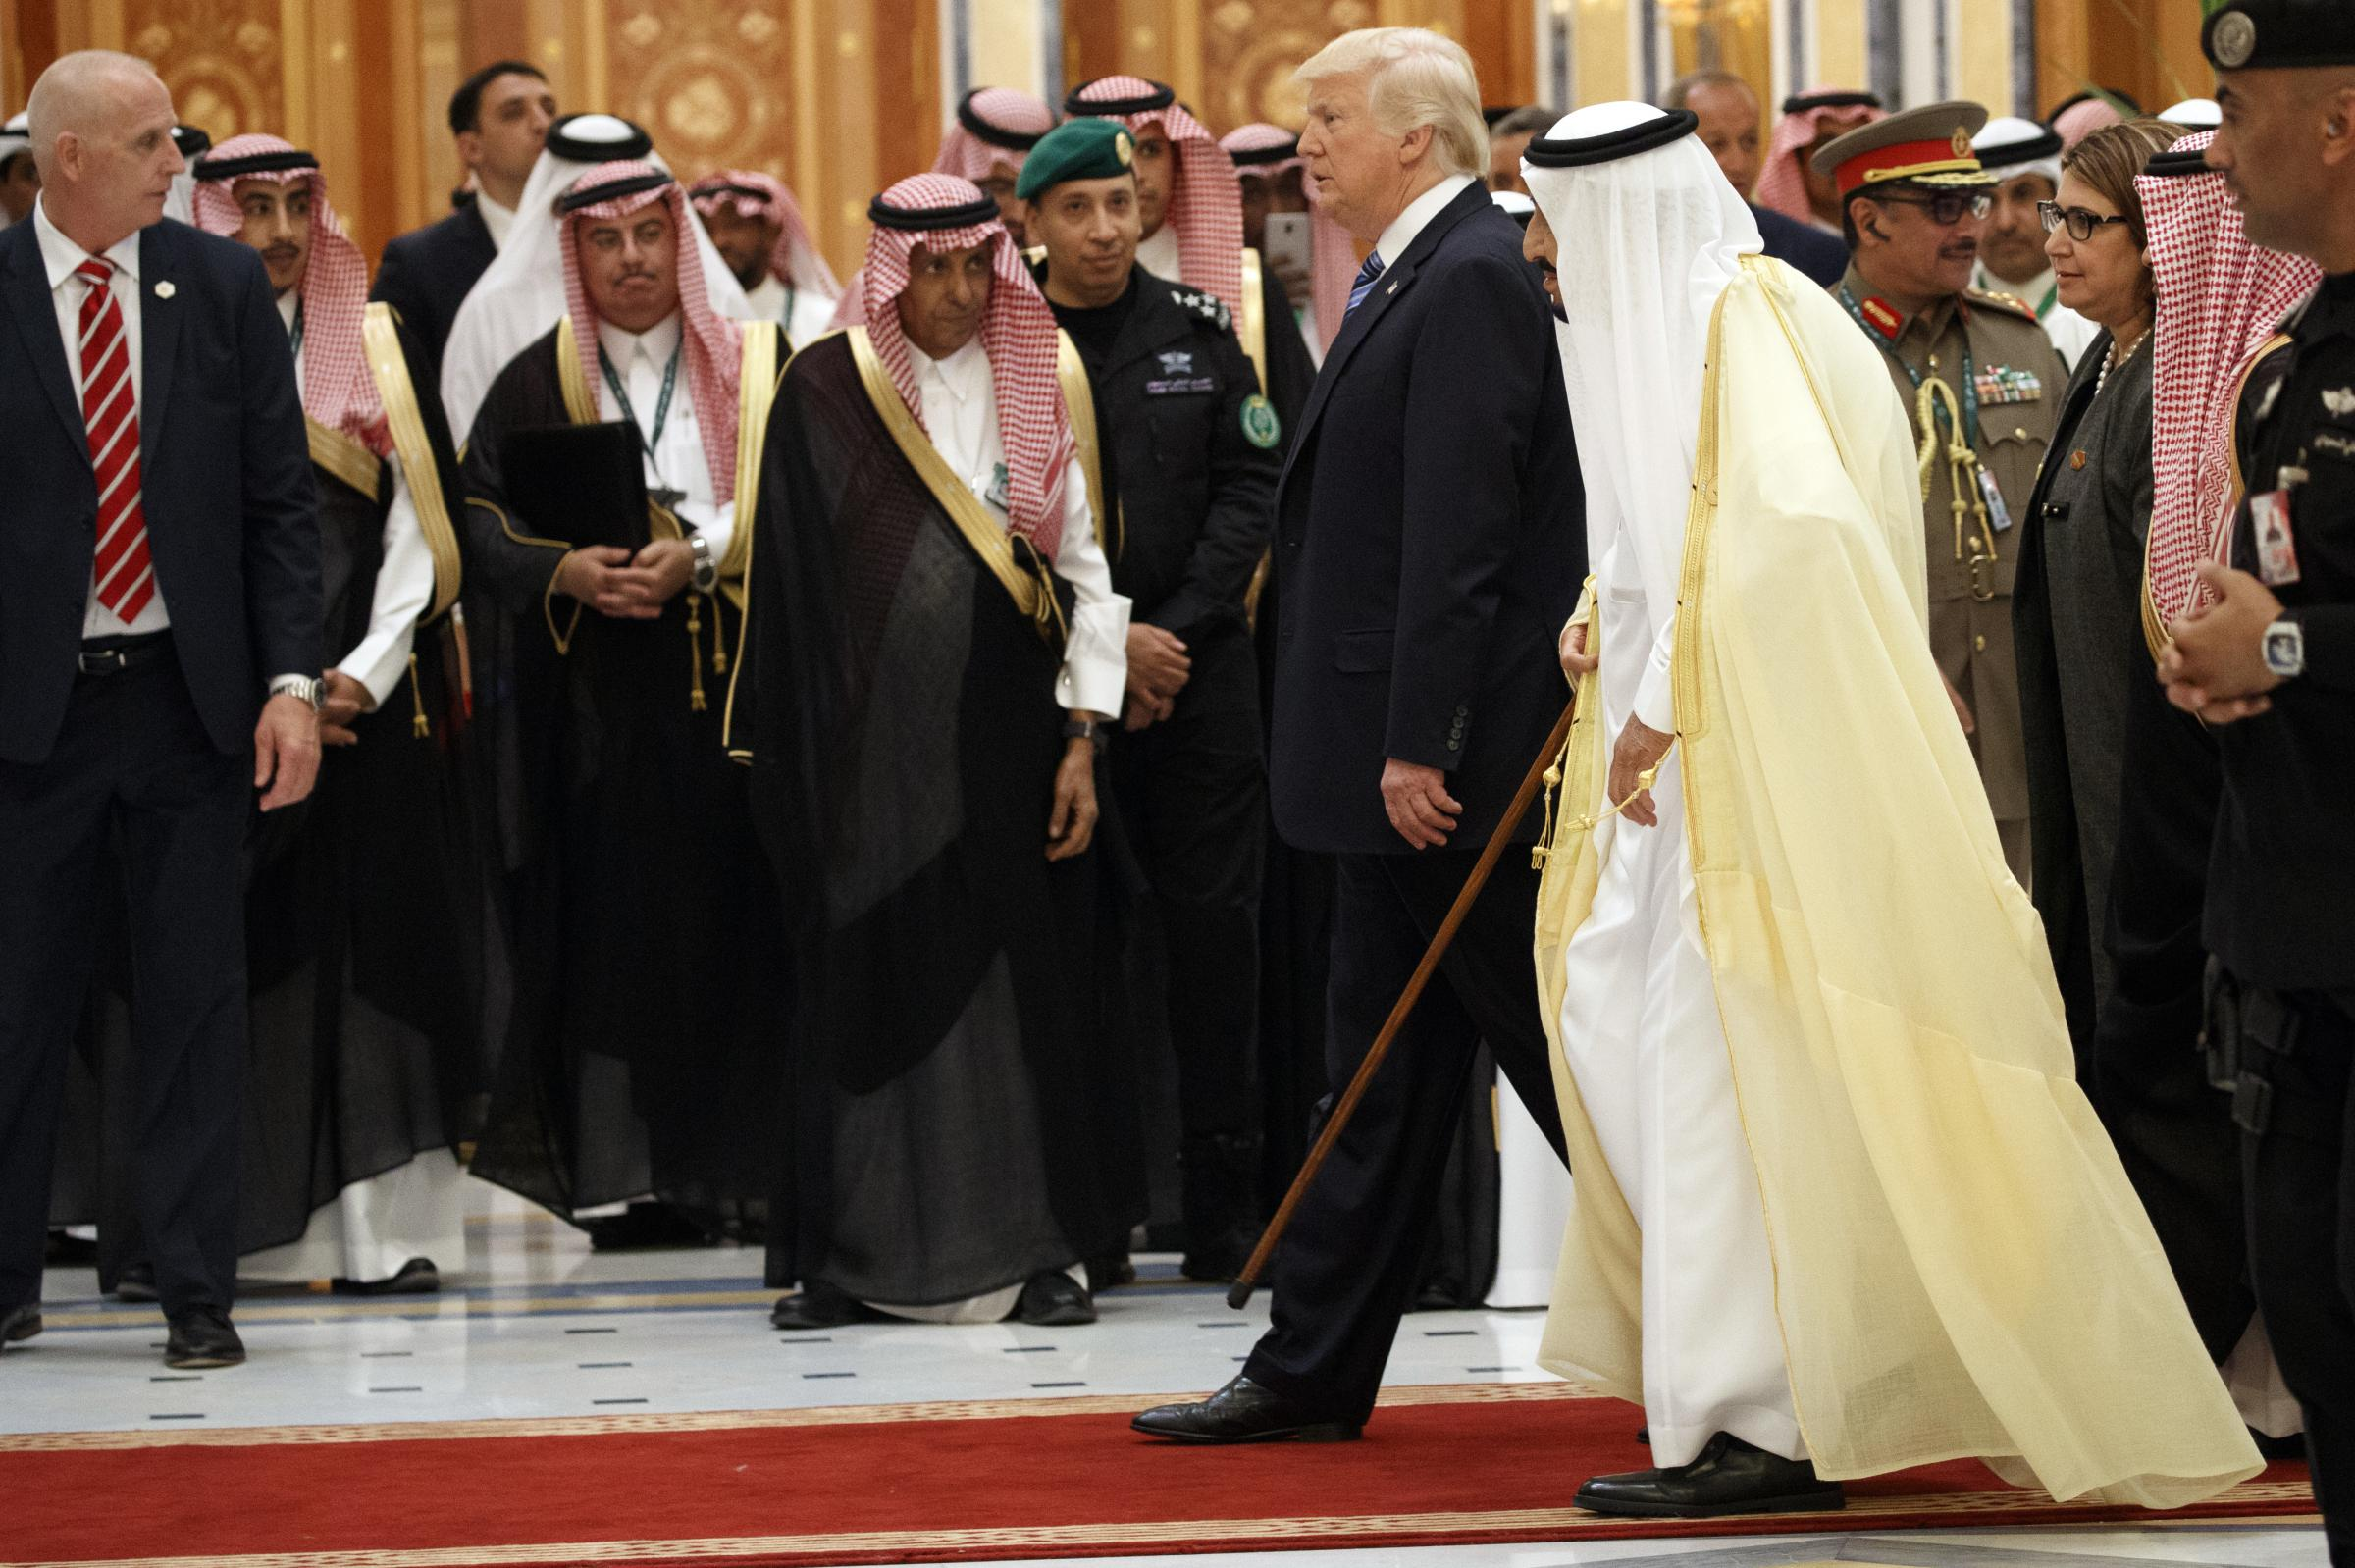 Trump Focuses On Impact Of Terrorism During Speech In Saudi Arabia